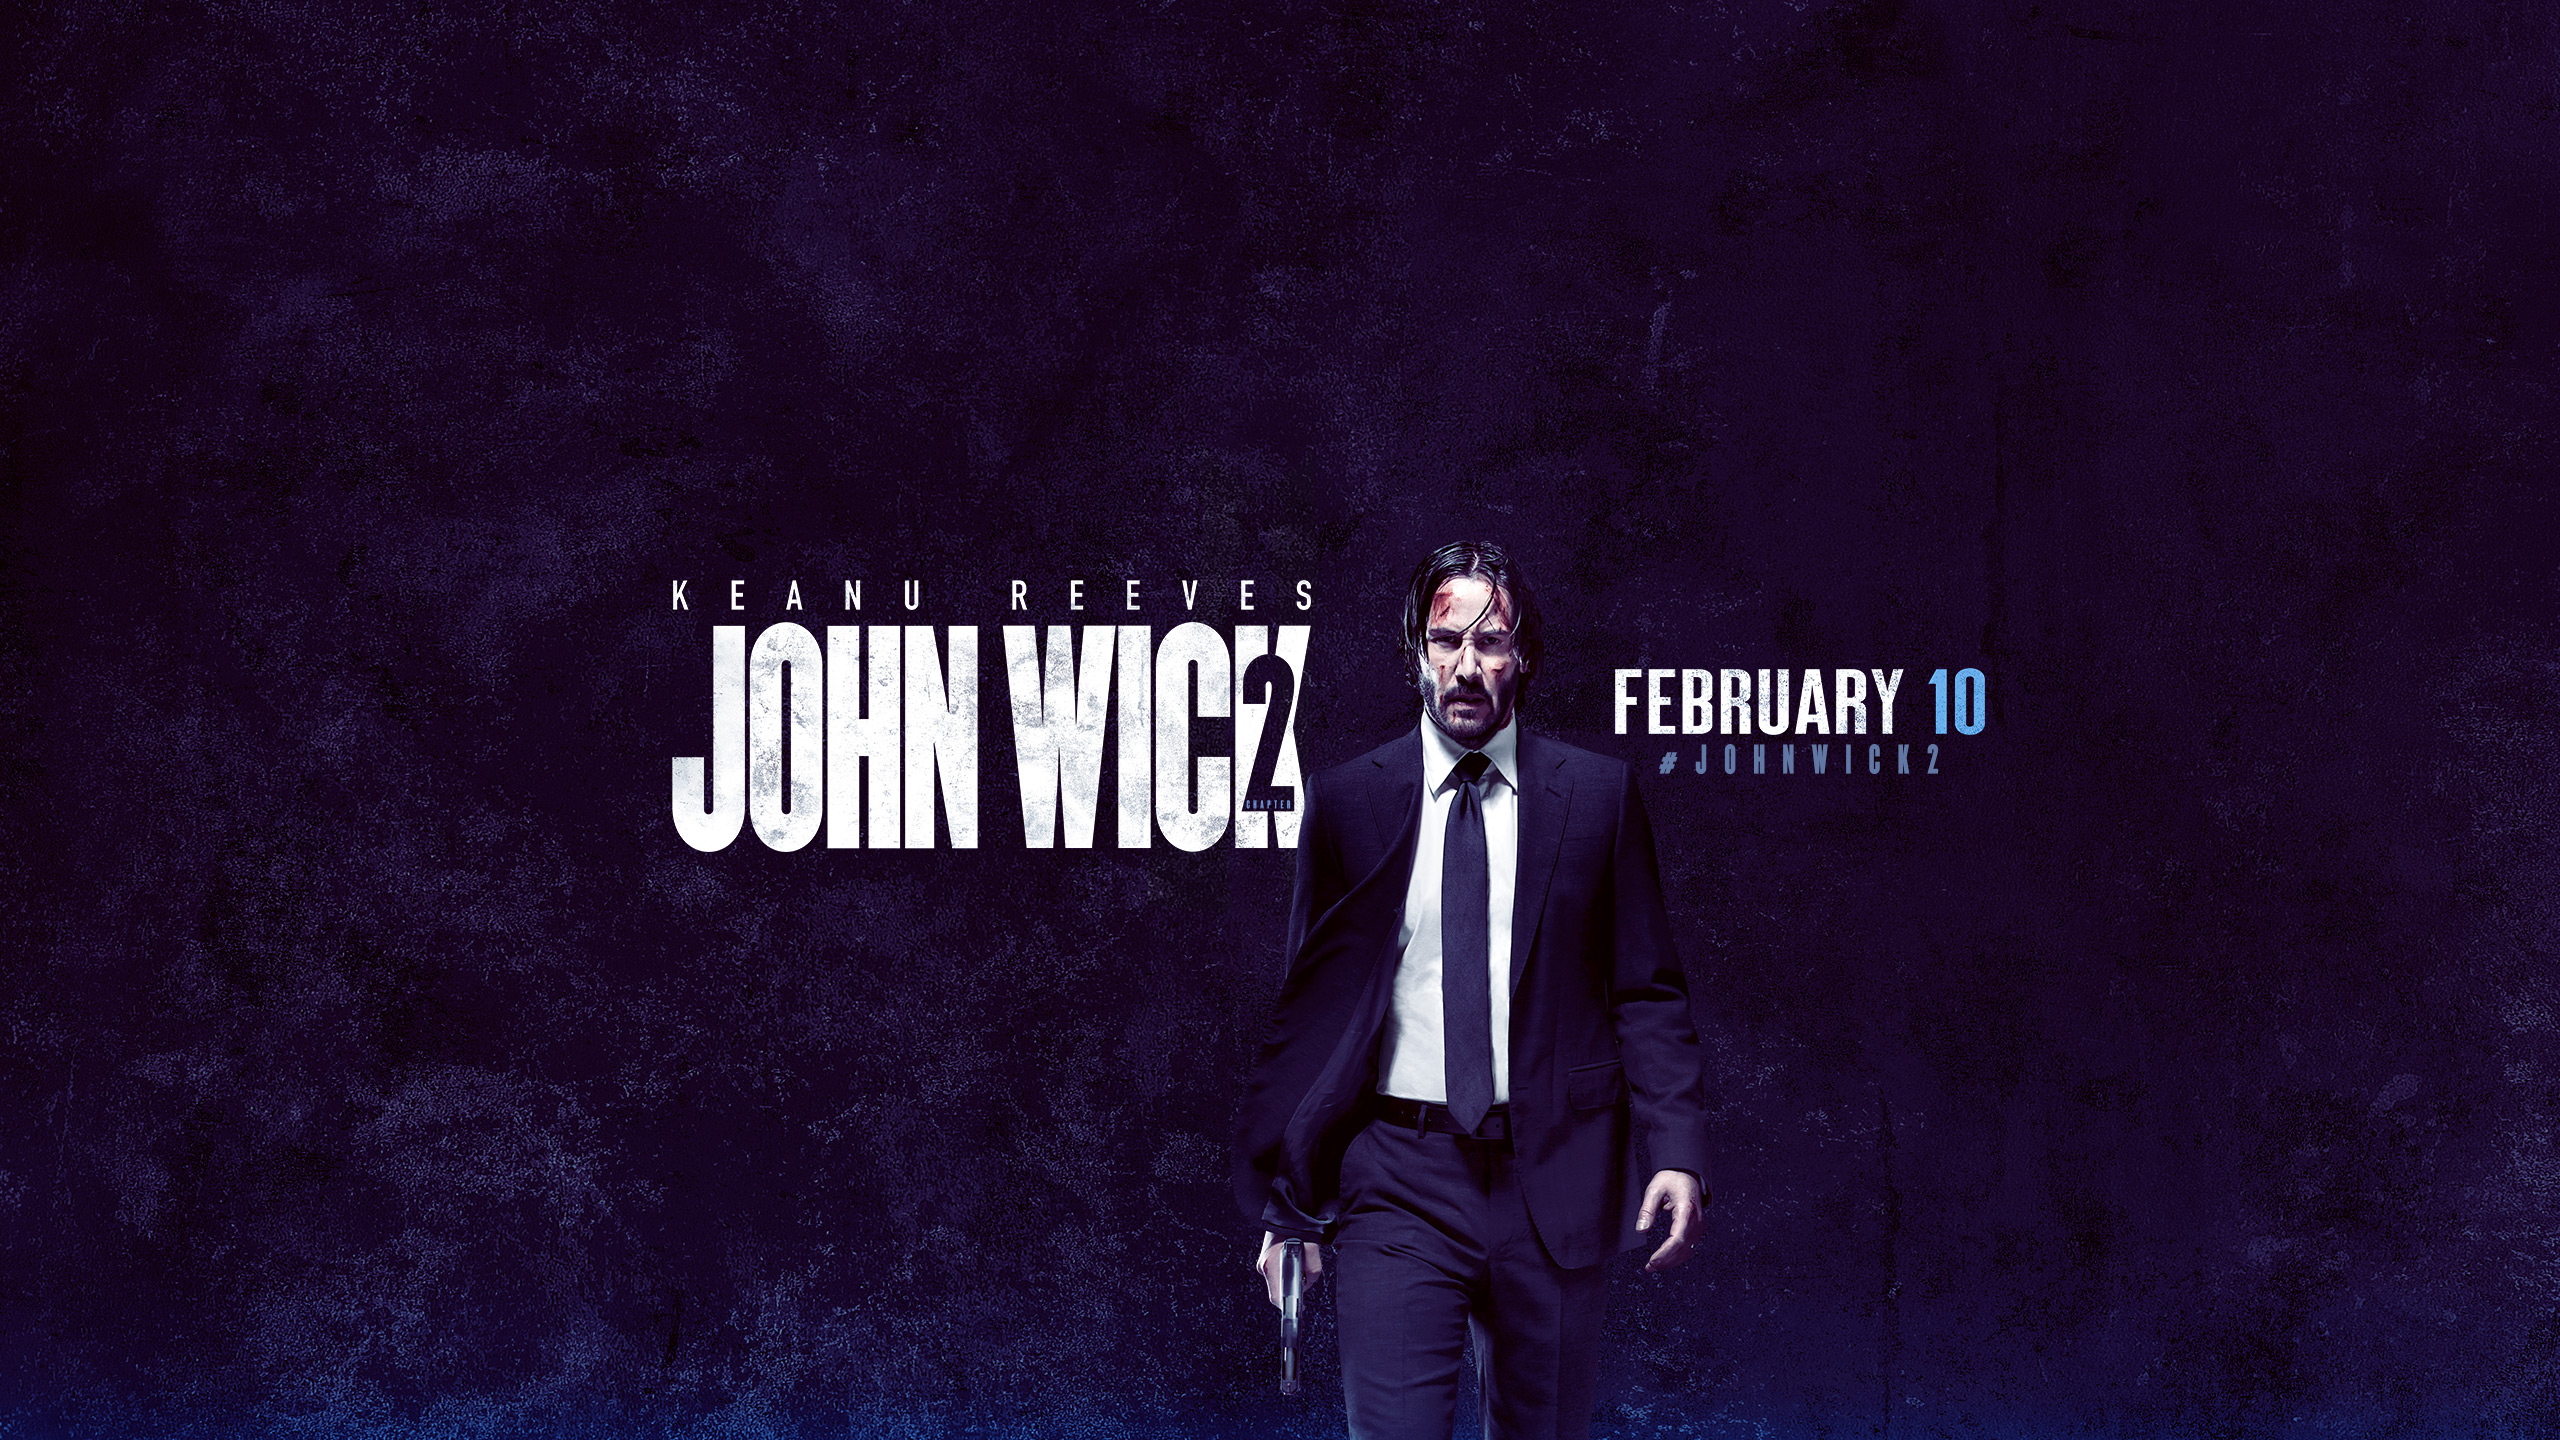 John Wick Gifs Get The Best Gif On Giphy